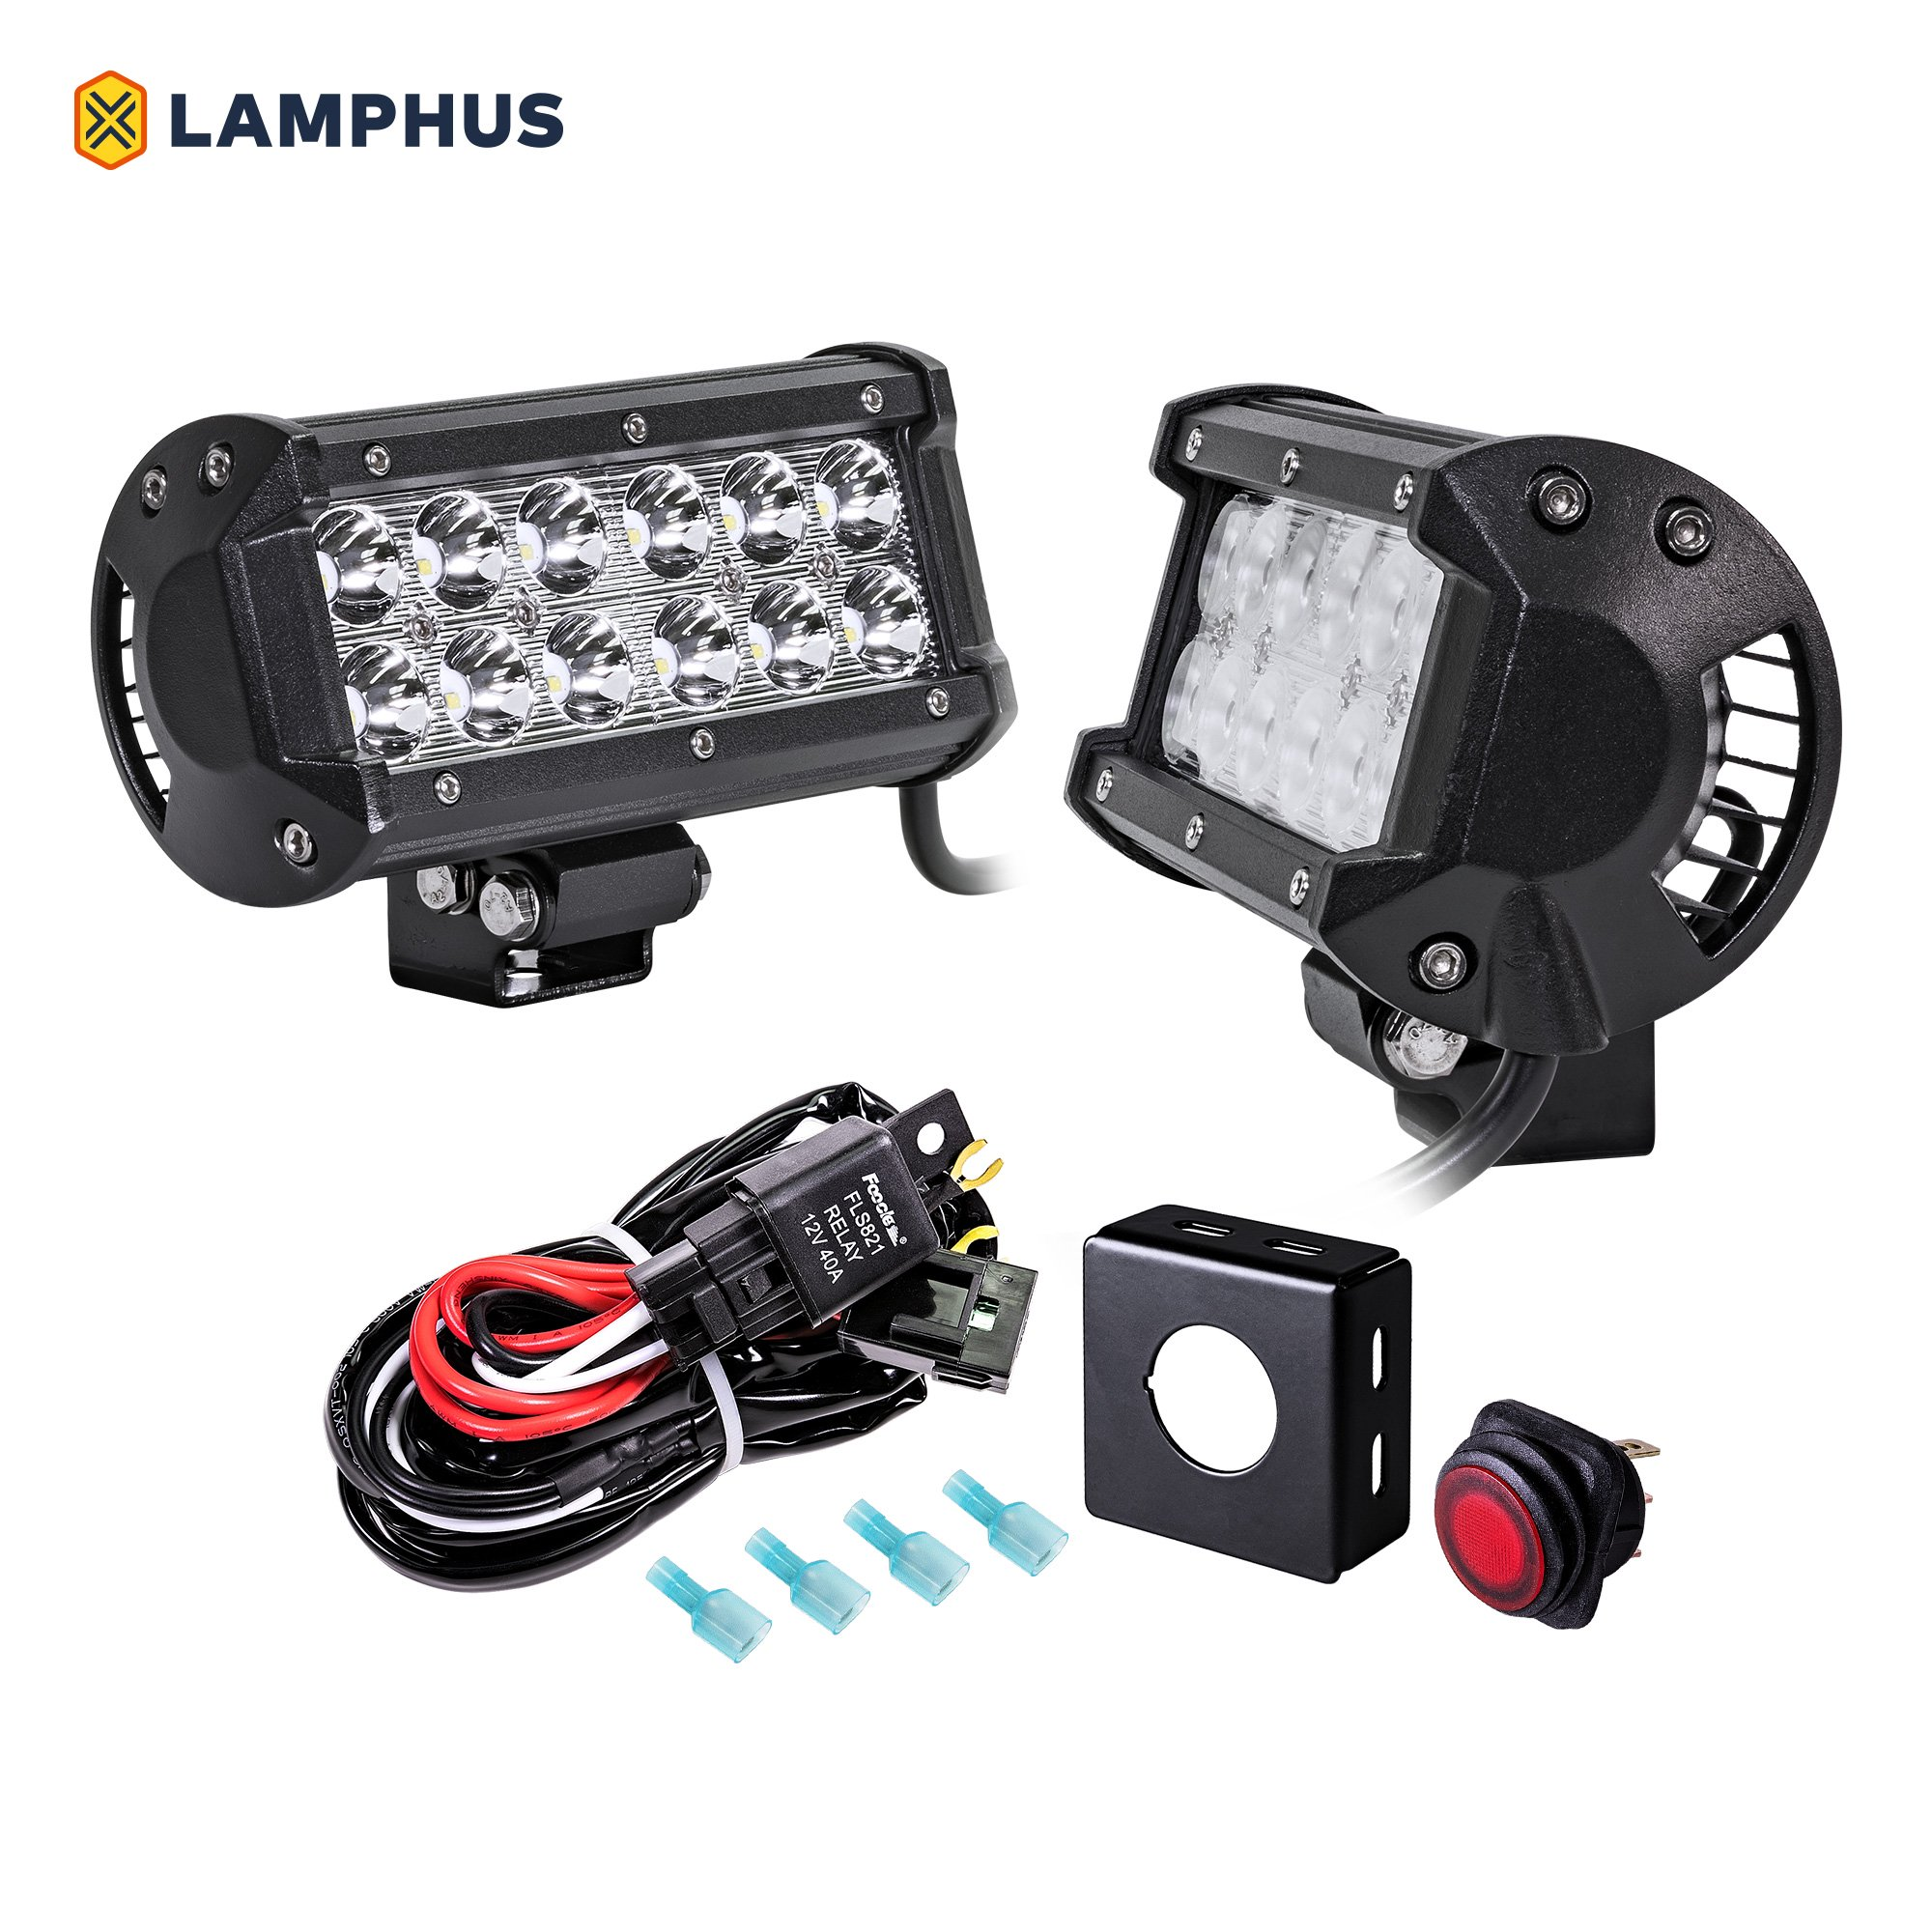 5 Inch Off Road Lights Lighting Kit Rocker Switch Spst X2 With Red Green Indicator Lamps